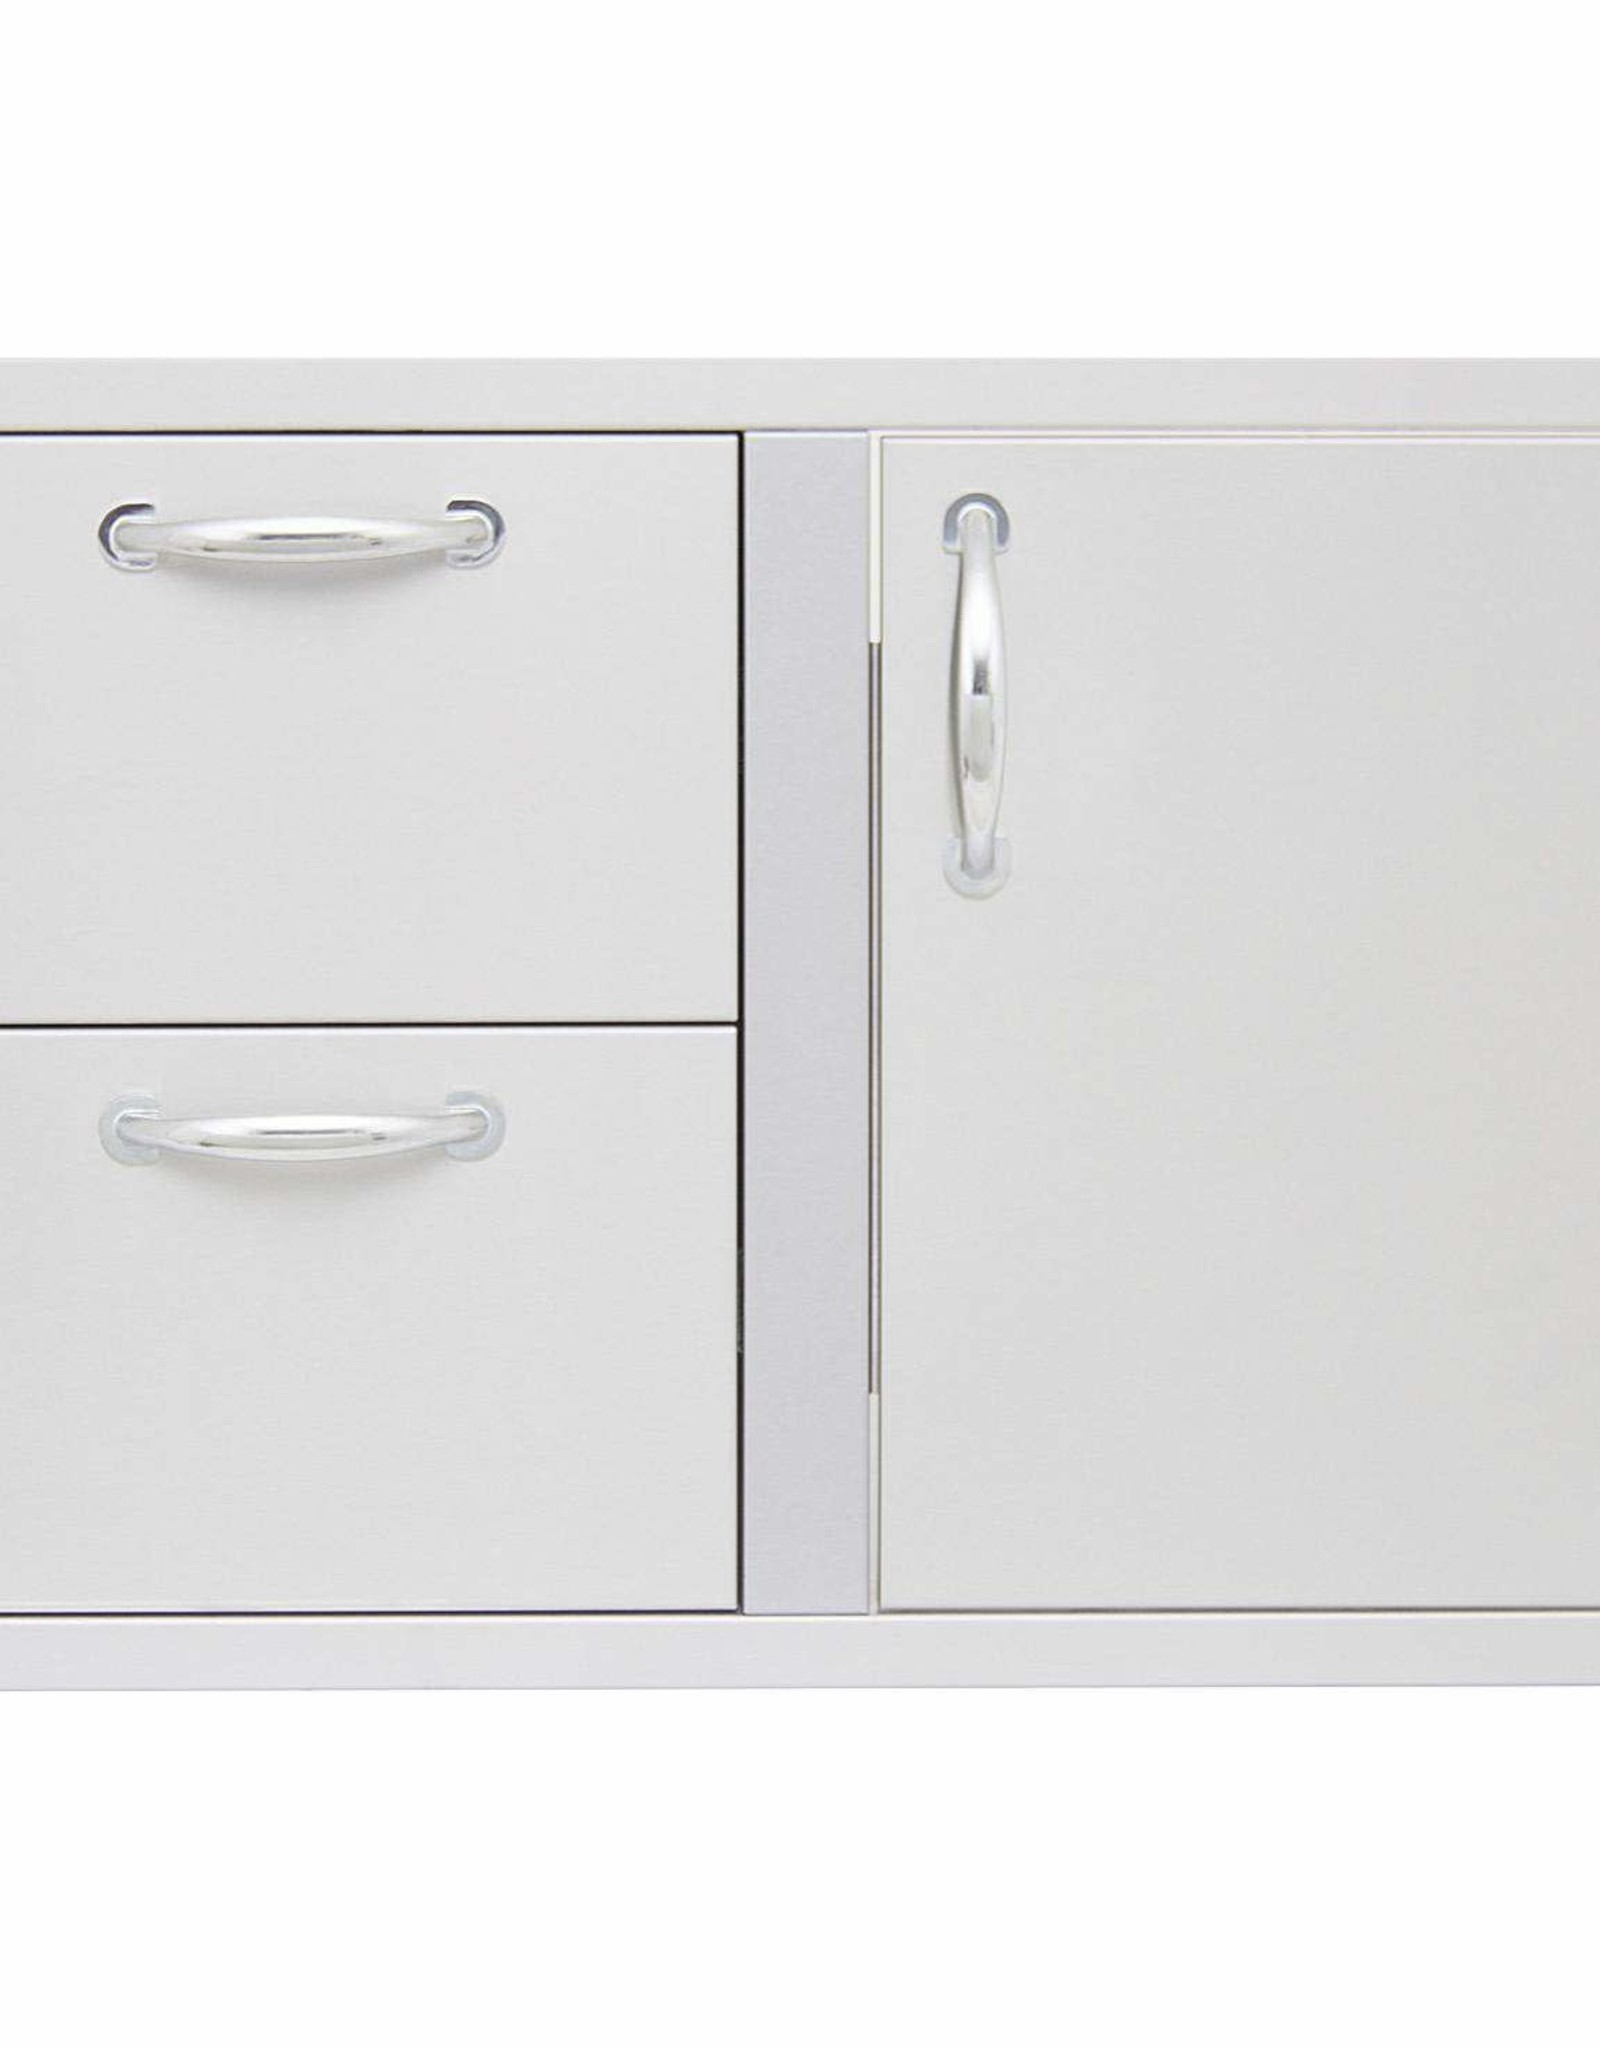 Blaze Outdoor Products Blaze 32-Inch Access Door & Stainless Steel Double Drawer Combo - BLZ-DDC-R